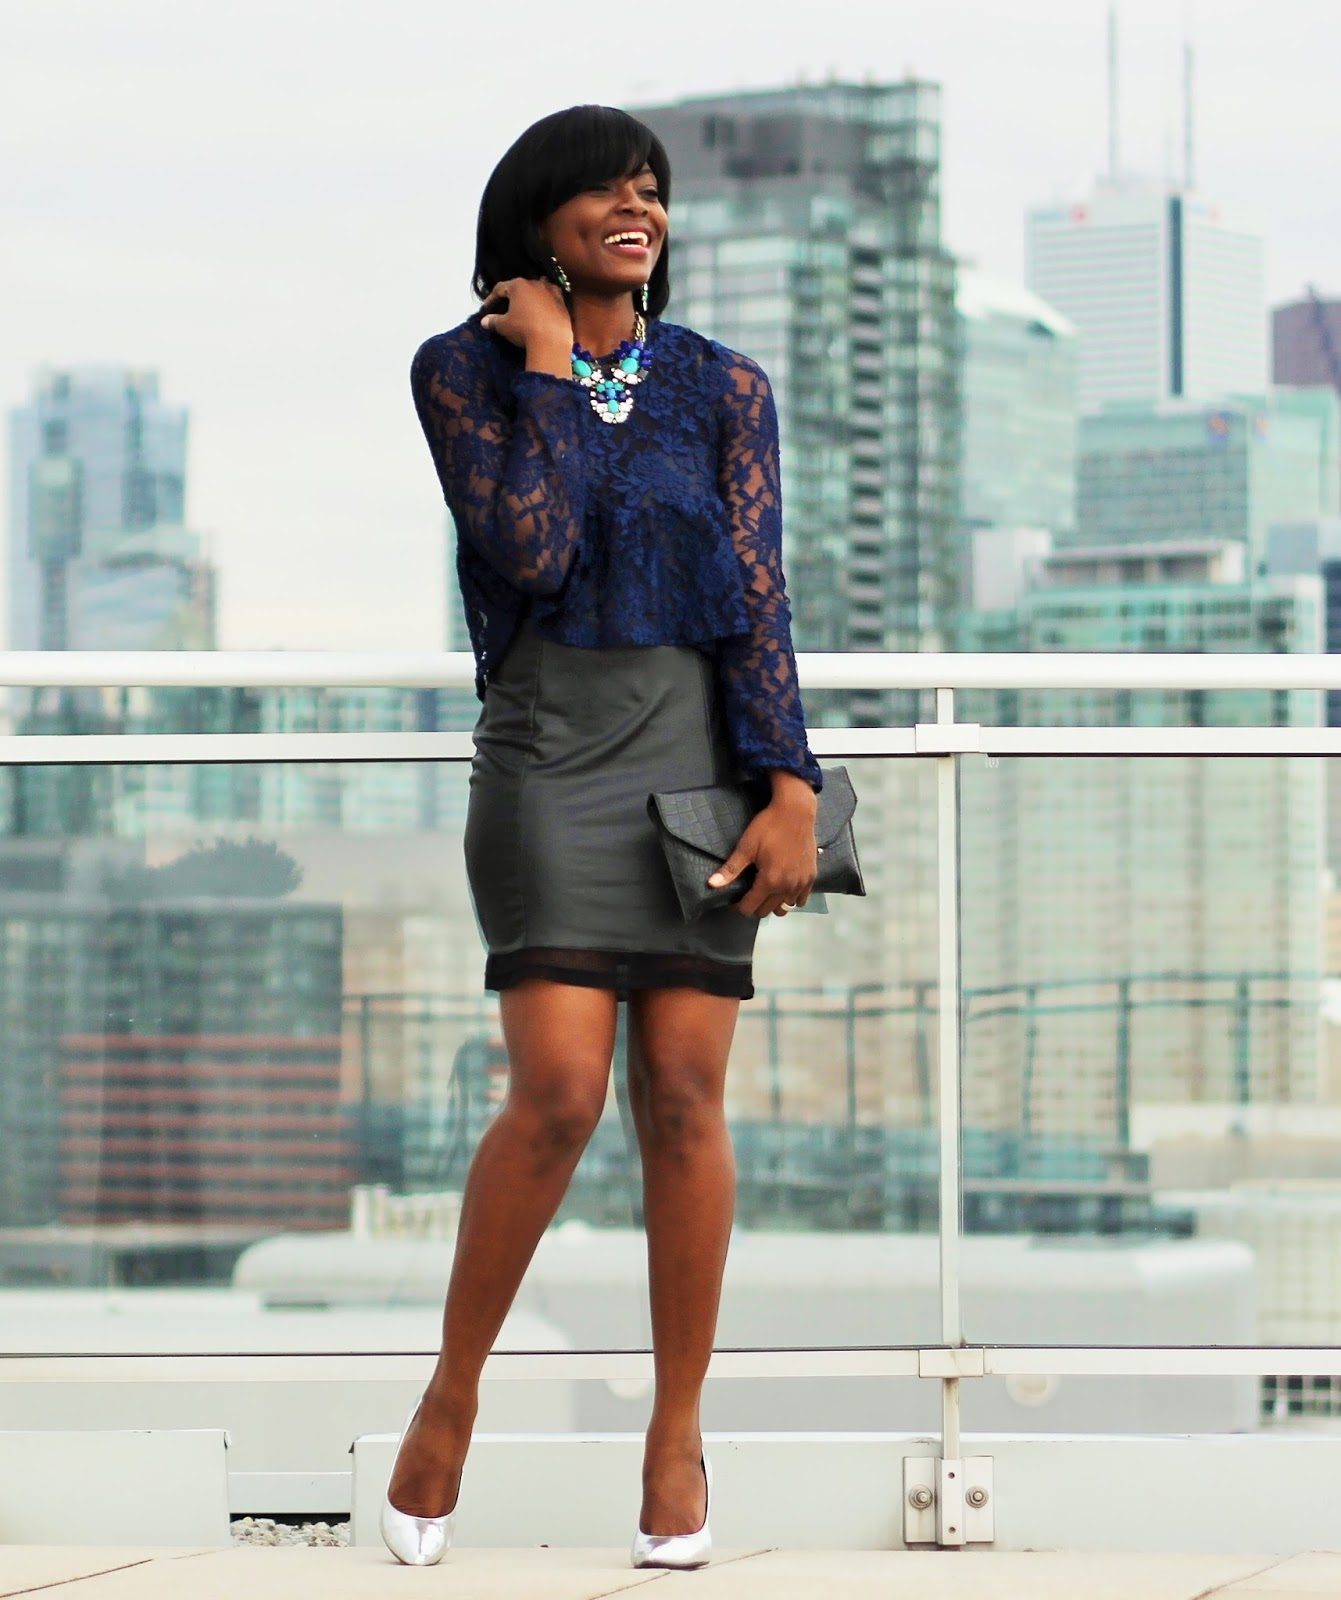 STYLING A SYMONE KELLY STATEMENT NECKLACE